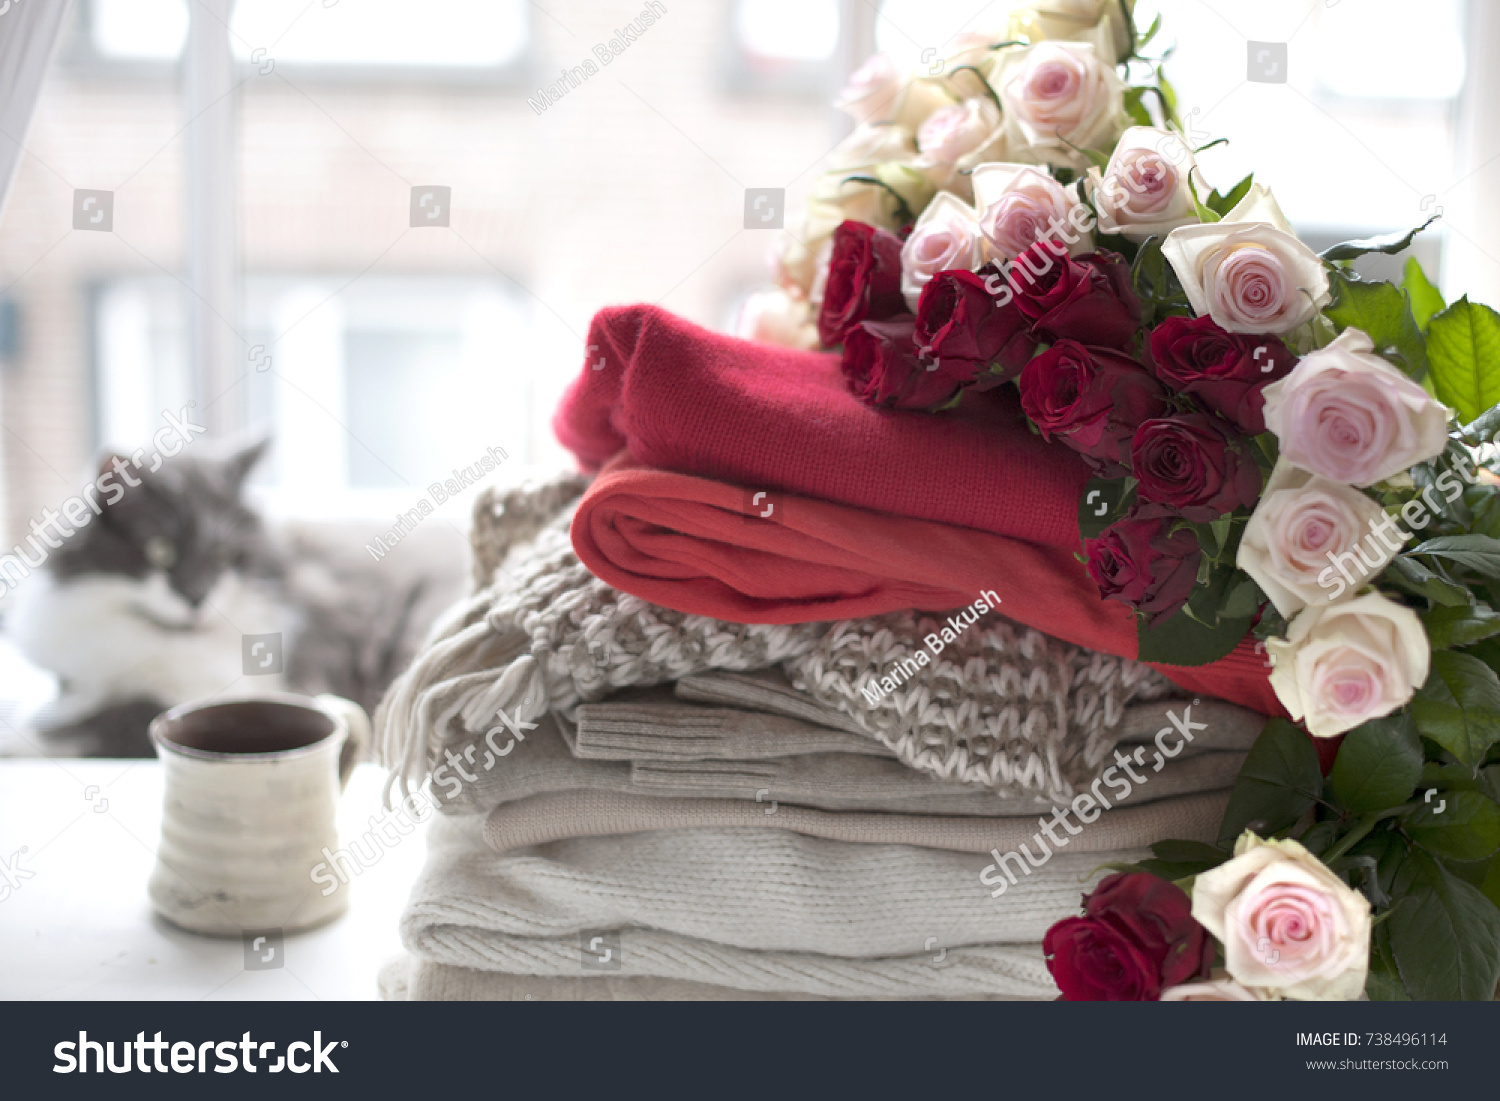 Bouquet Roses On Winter Clothes Cat Stock Photo (Royalty Free ...